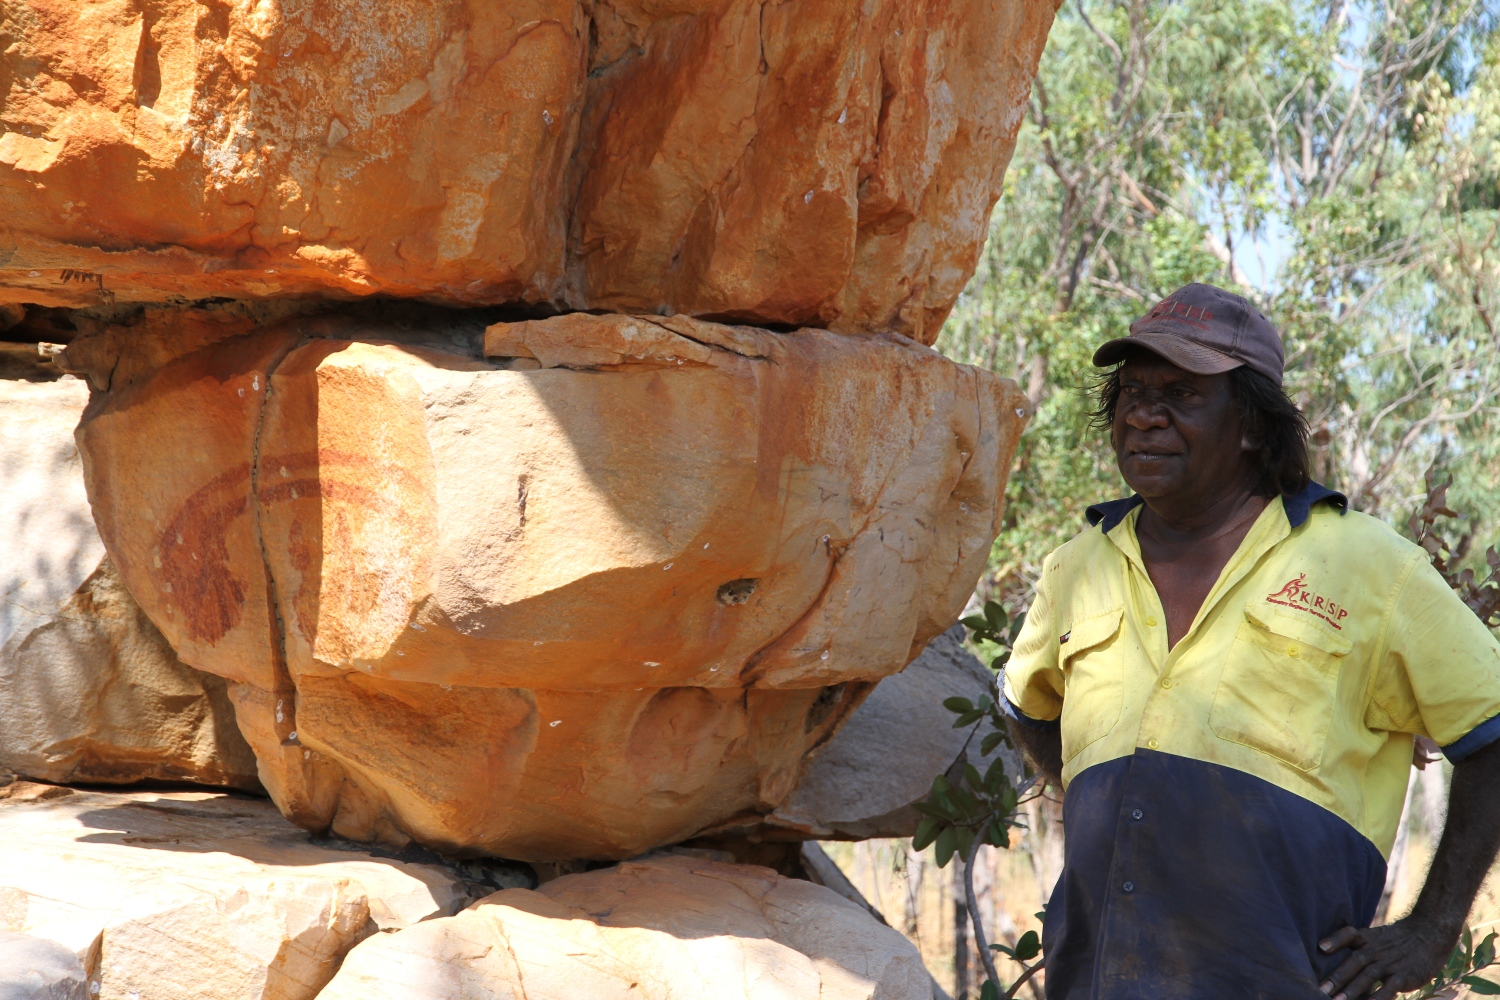 Dennis Bundamurra at the shooting star rock art site. © AGWA 2015